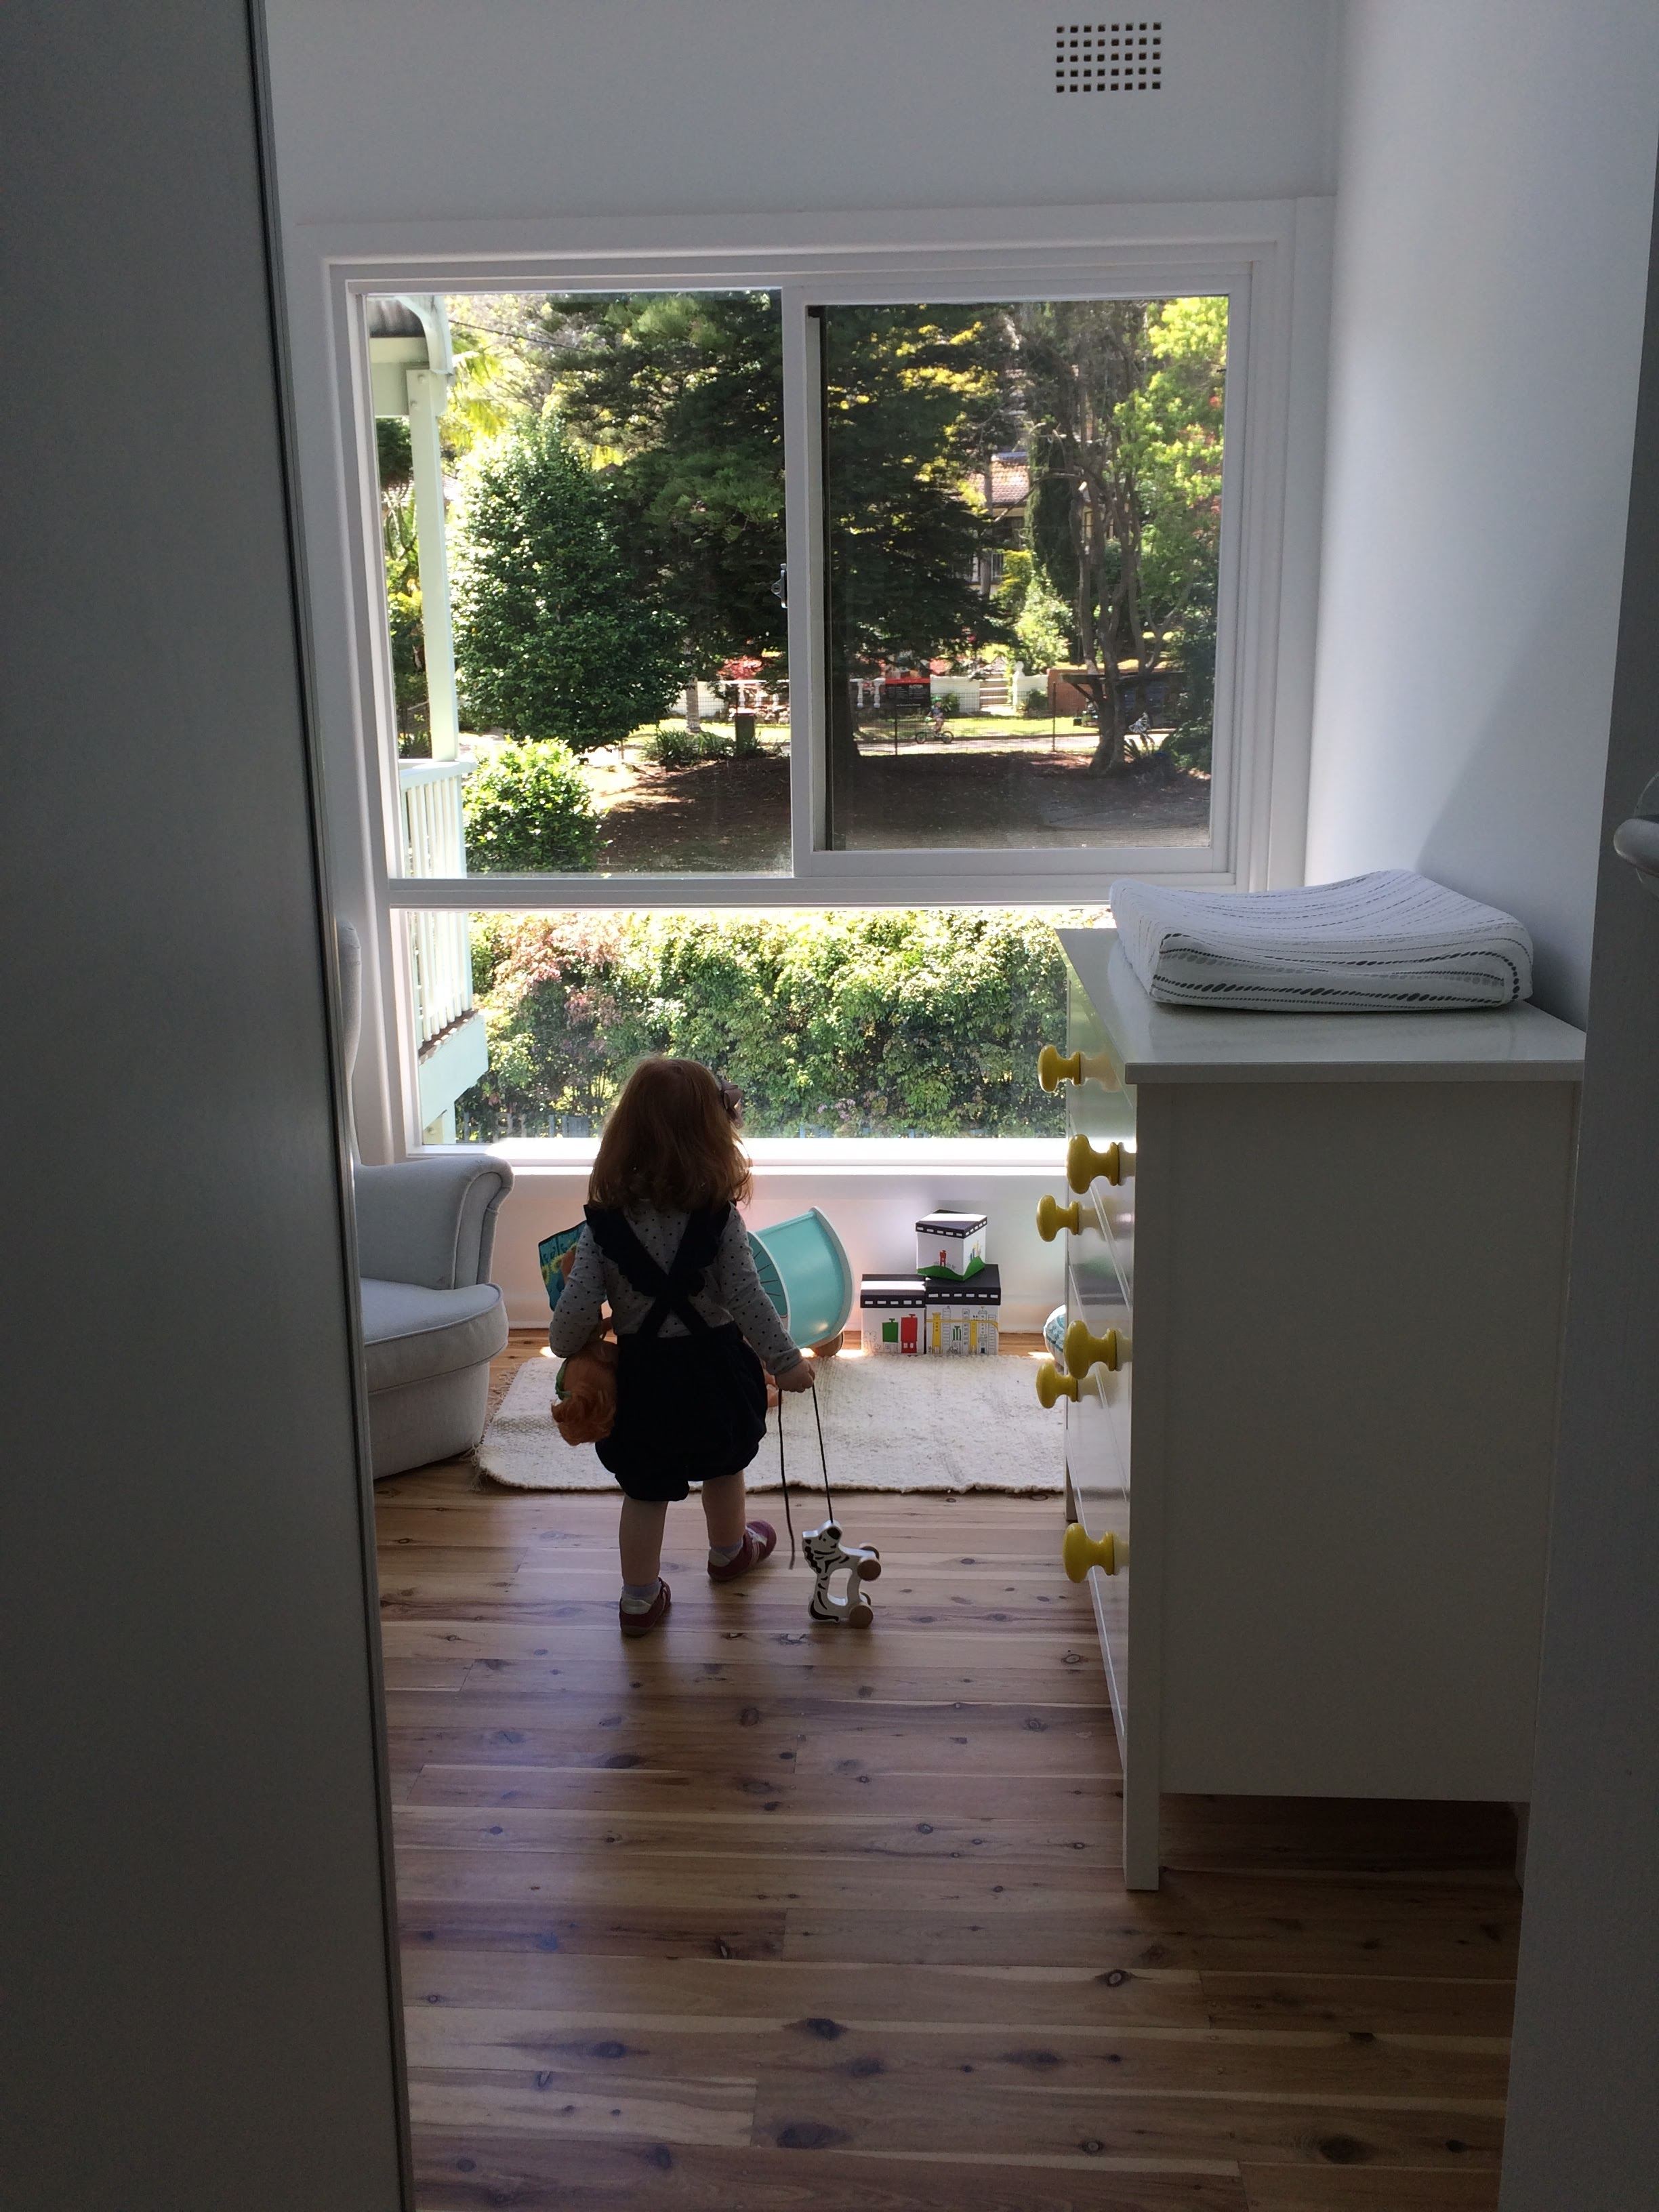 NEW BEDROOM FOR OUR LITTLE ONE - GREAT VIEWS TO THE LEAFY FRONT GARDEN